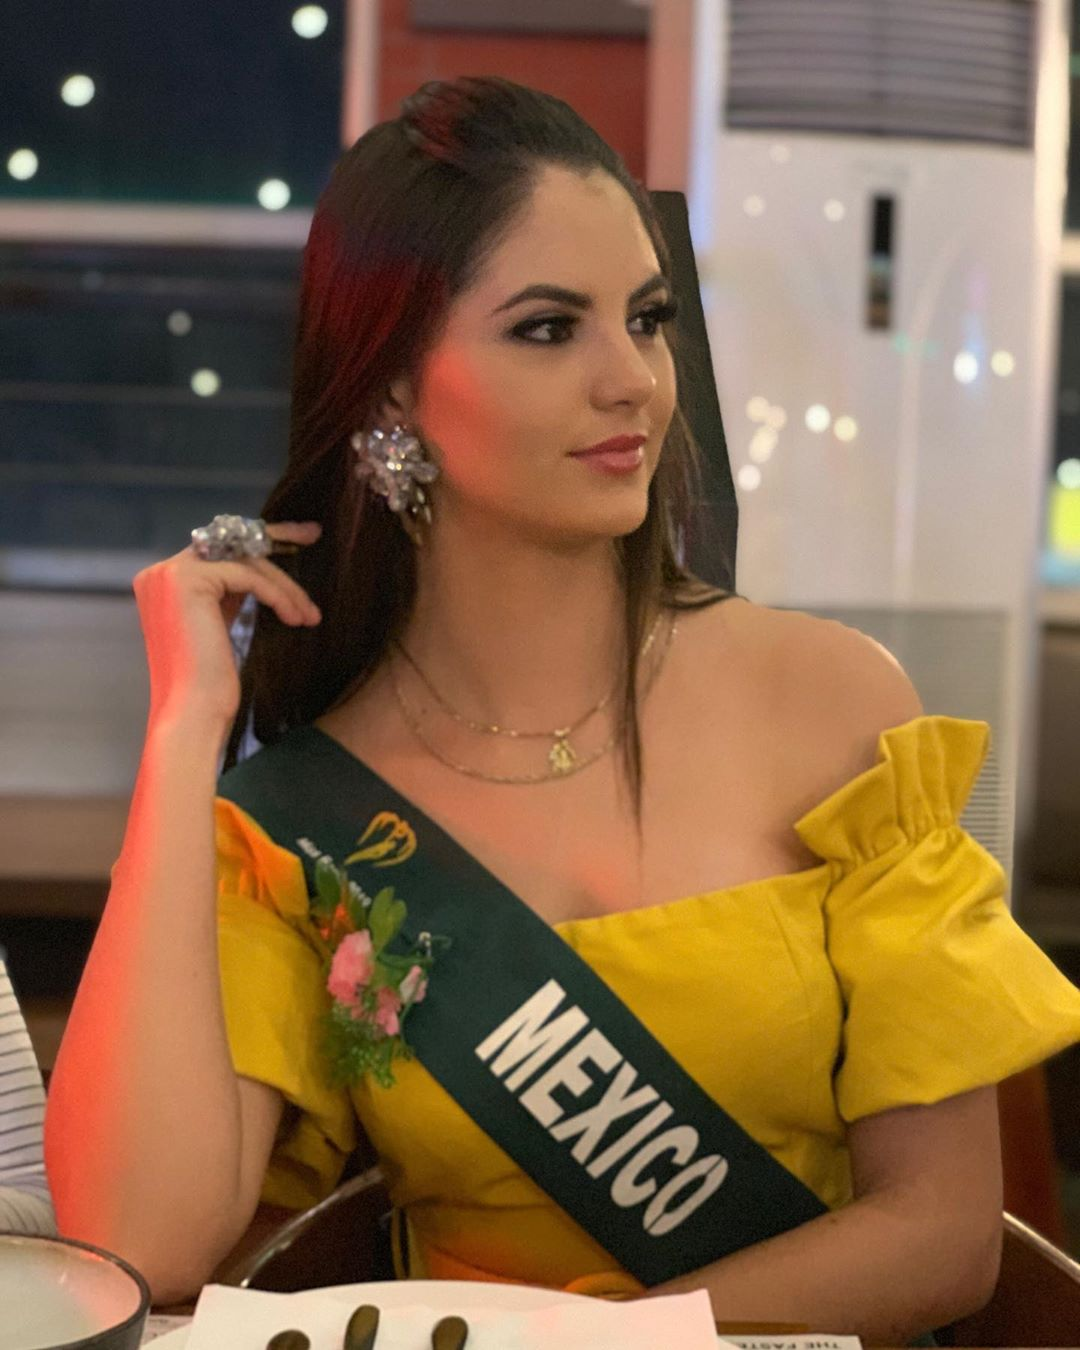 hilary islas, miss earth mexico 2019. - Página 14 69969310